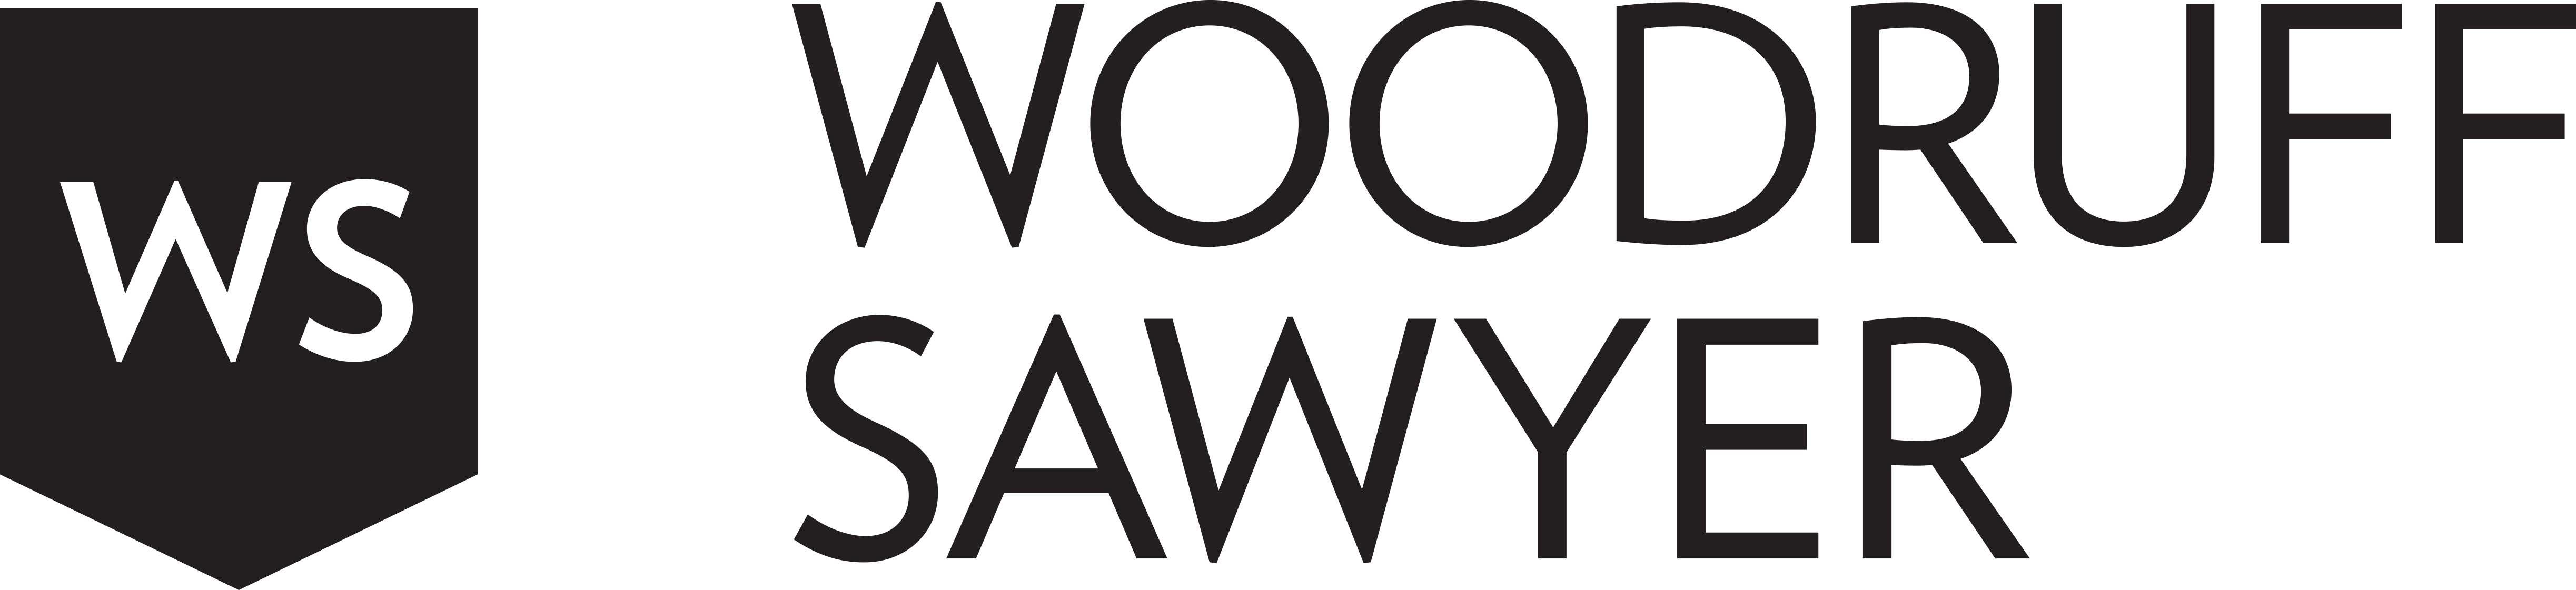 woodruff-sawyer-logo